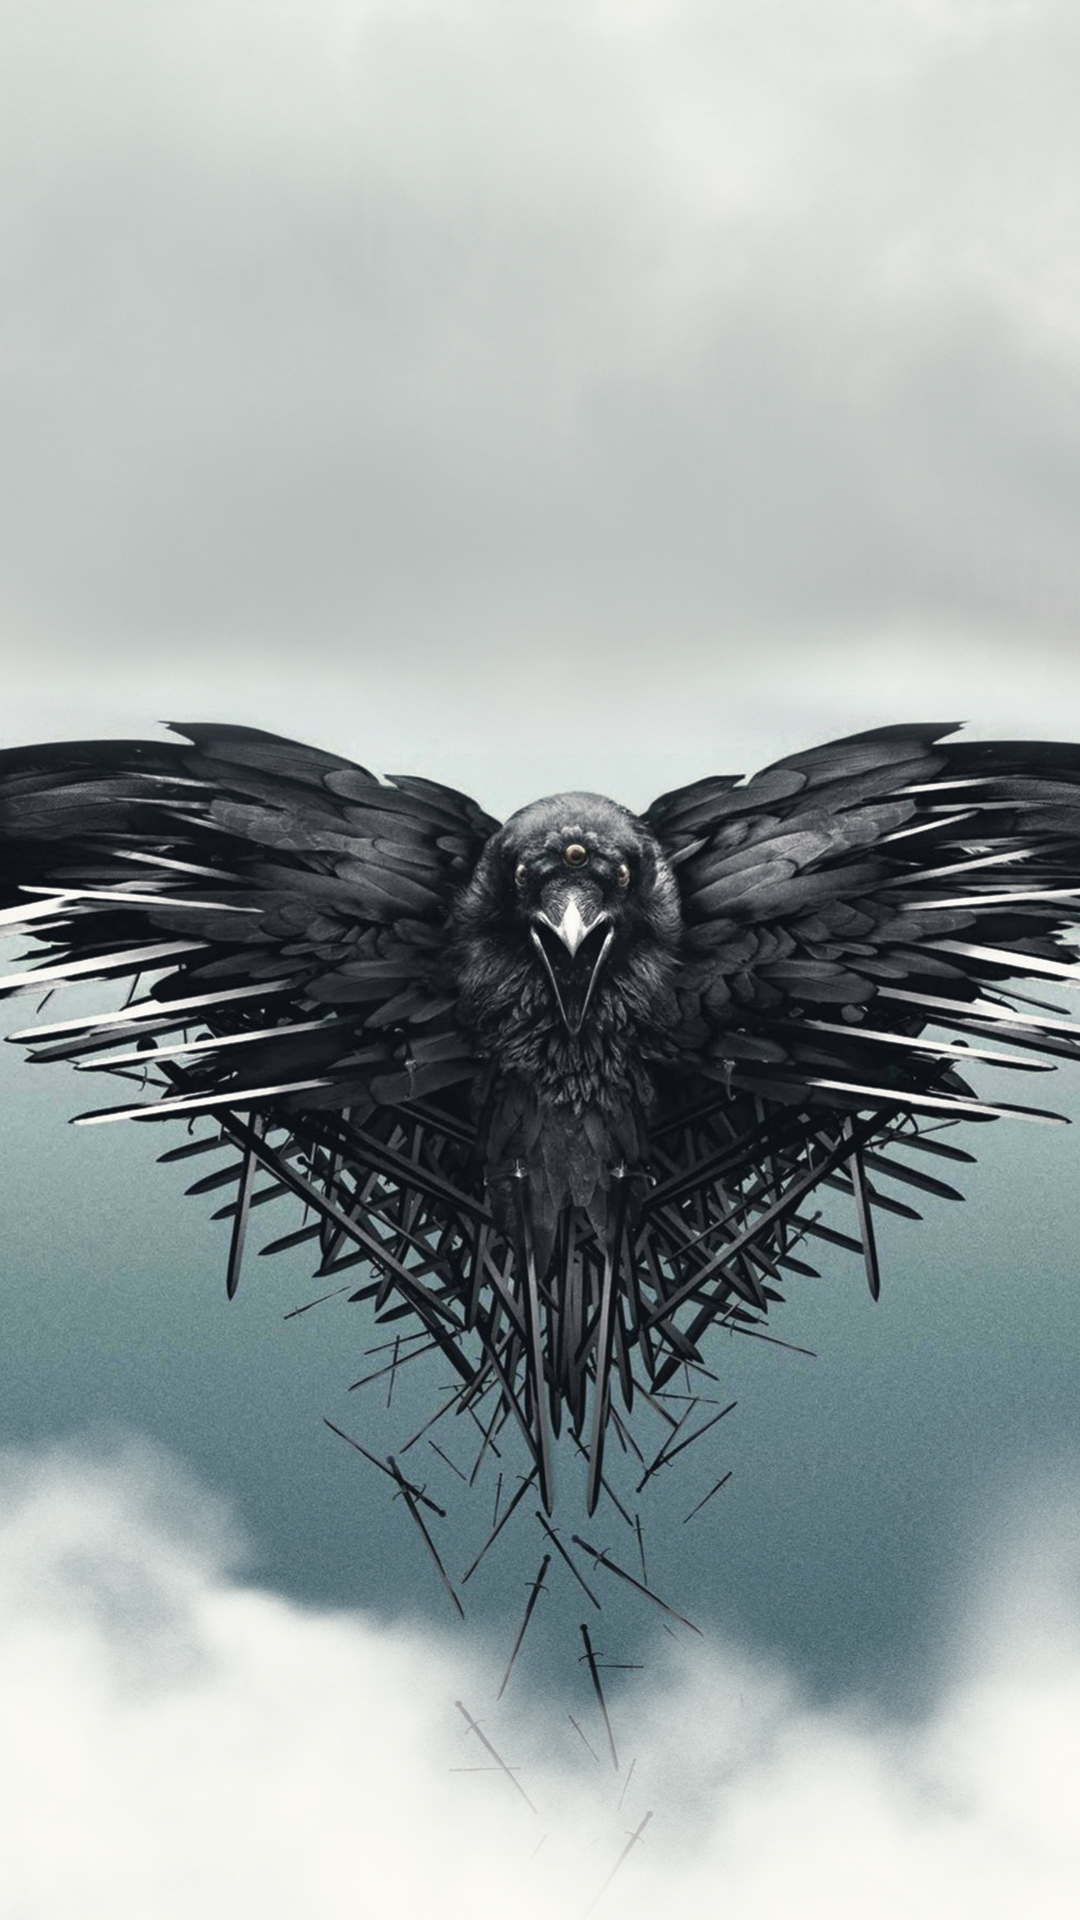 Game Of Thrones Phone Wallpapers Hd - HD Wallpaper